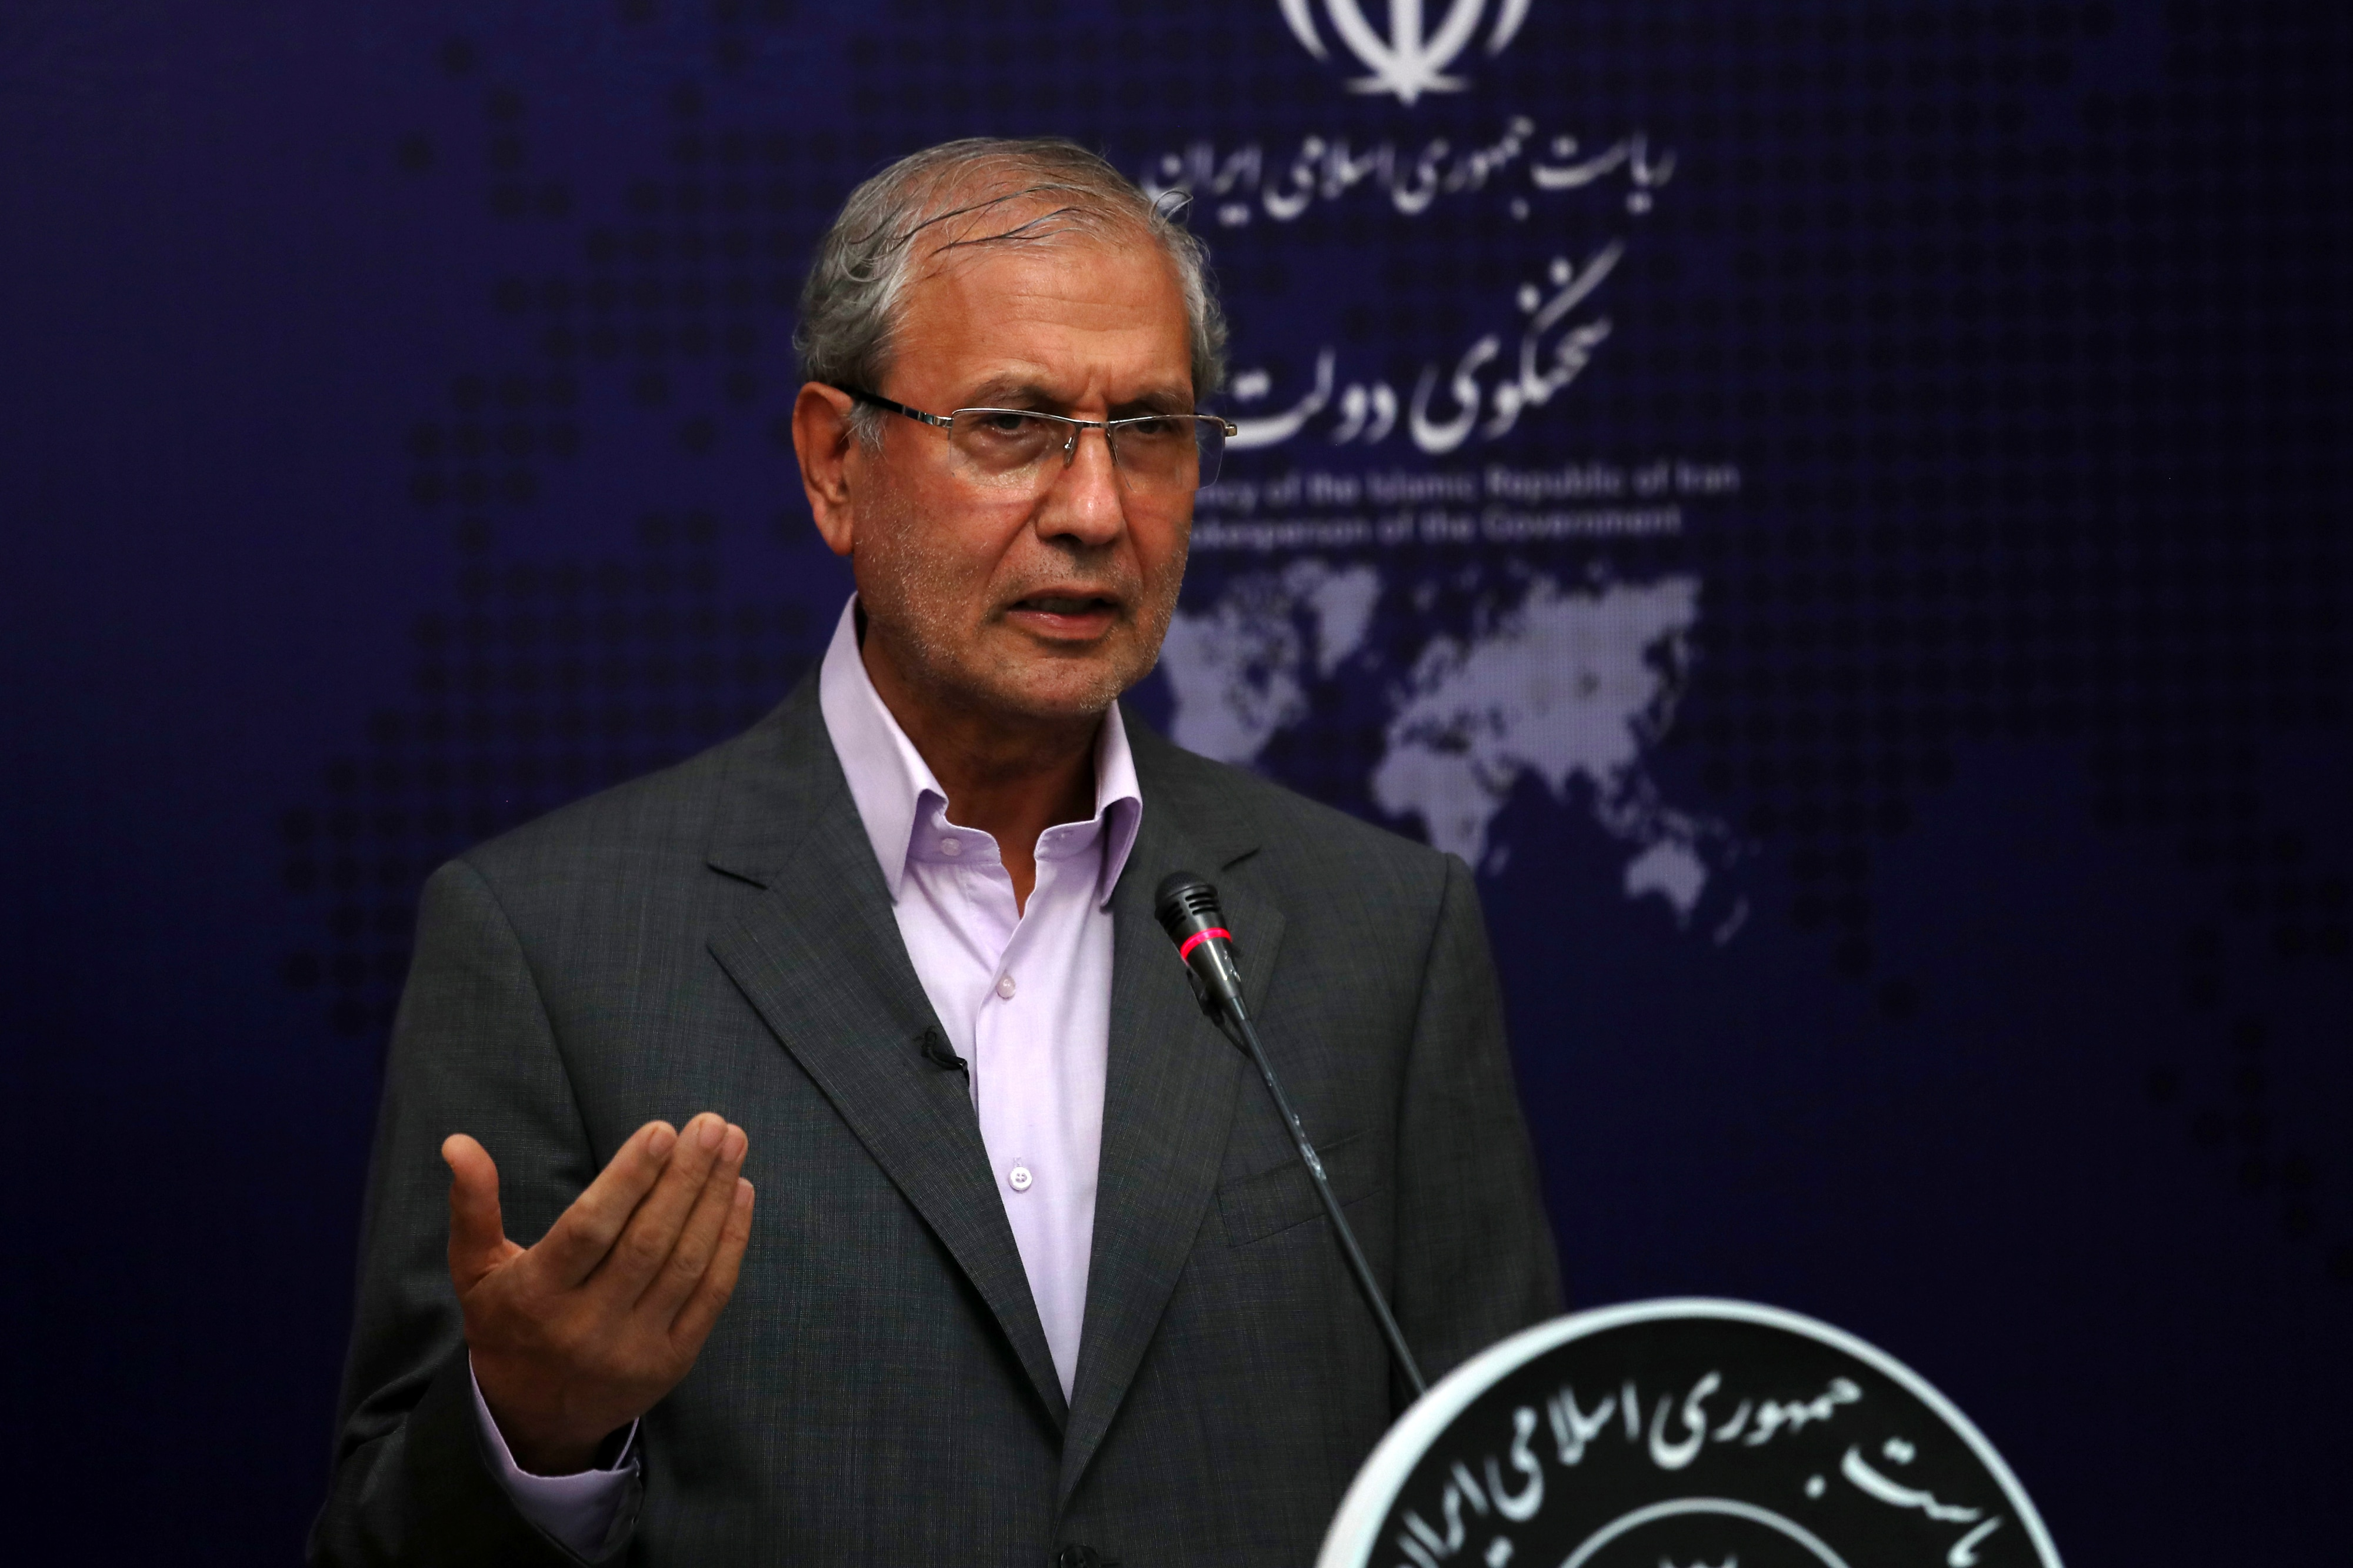 Iran says it is holding talks on prisoner exchanges with US